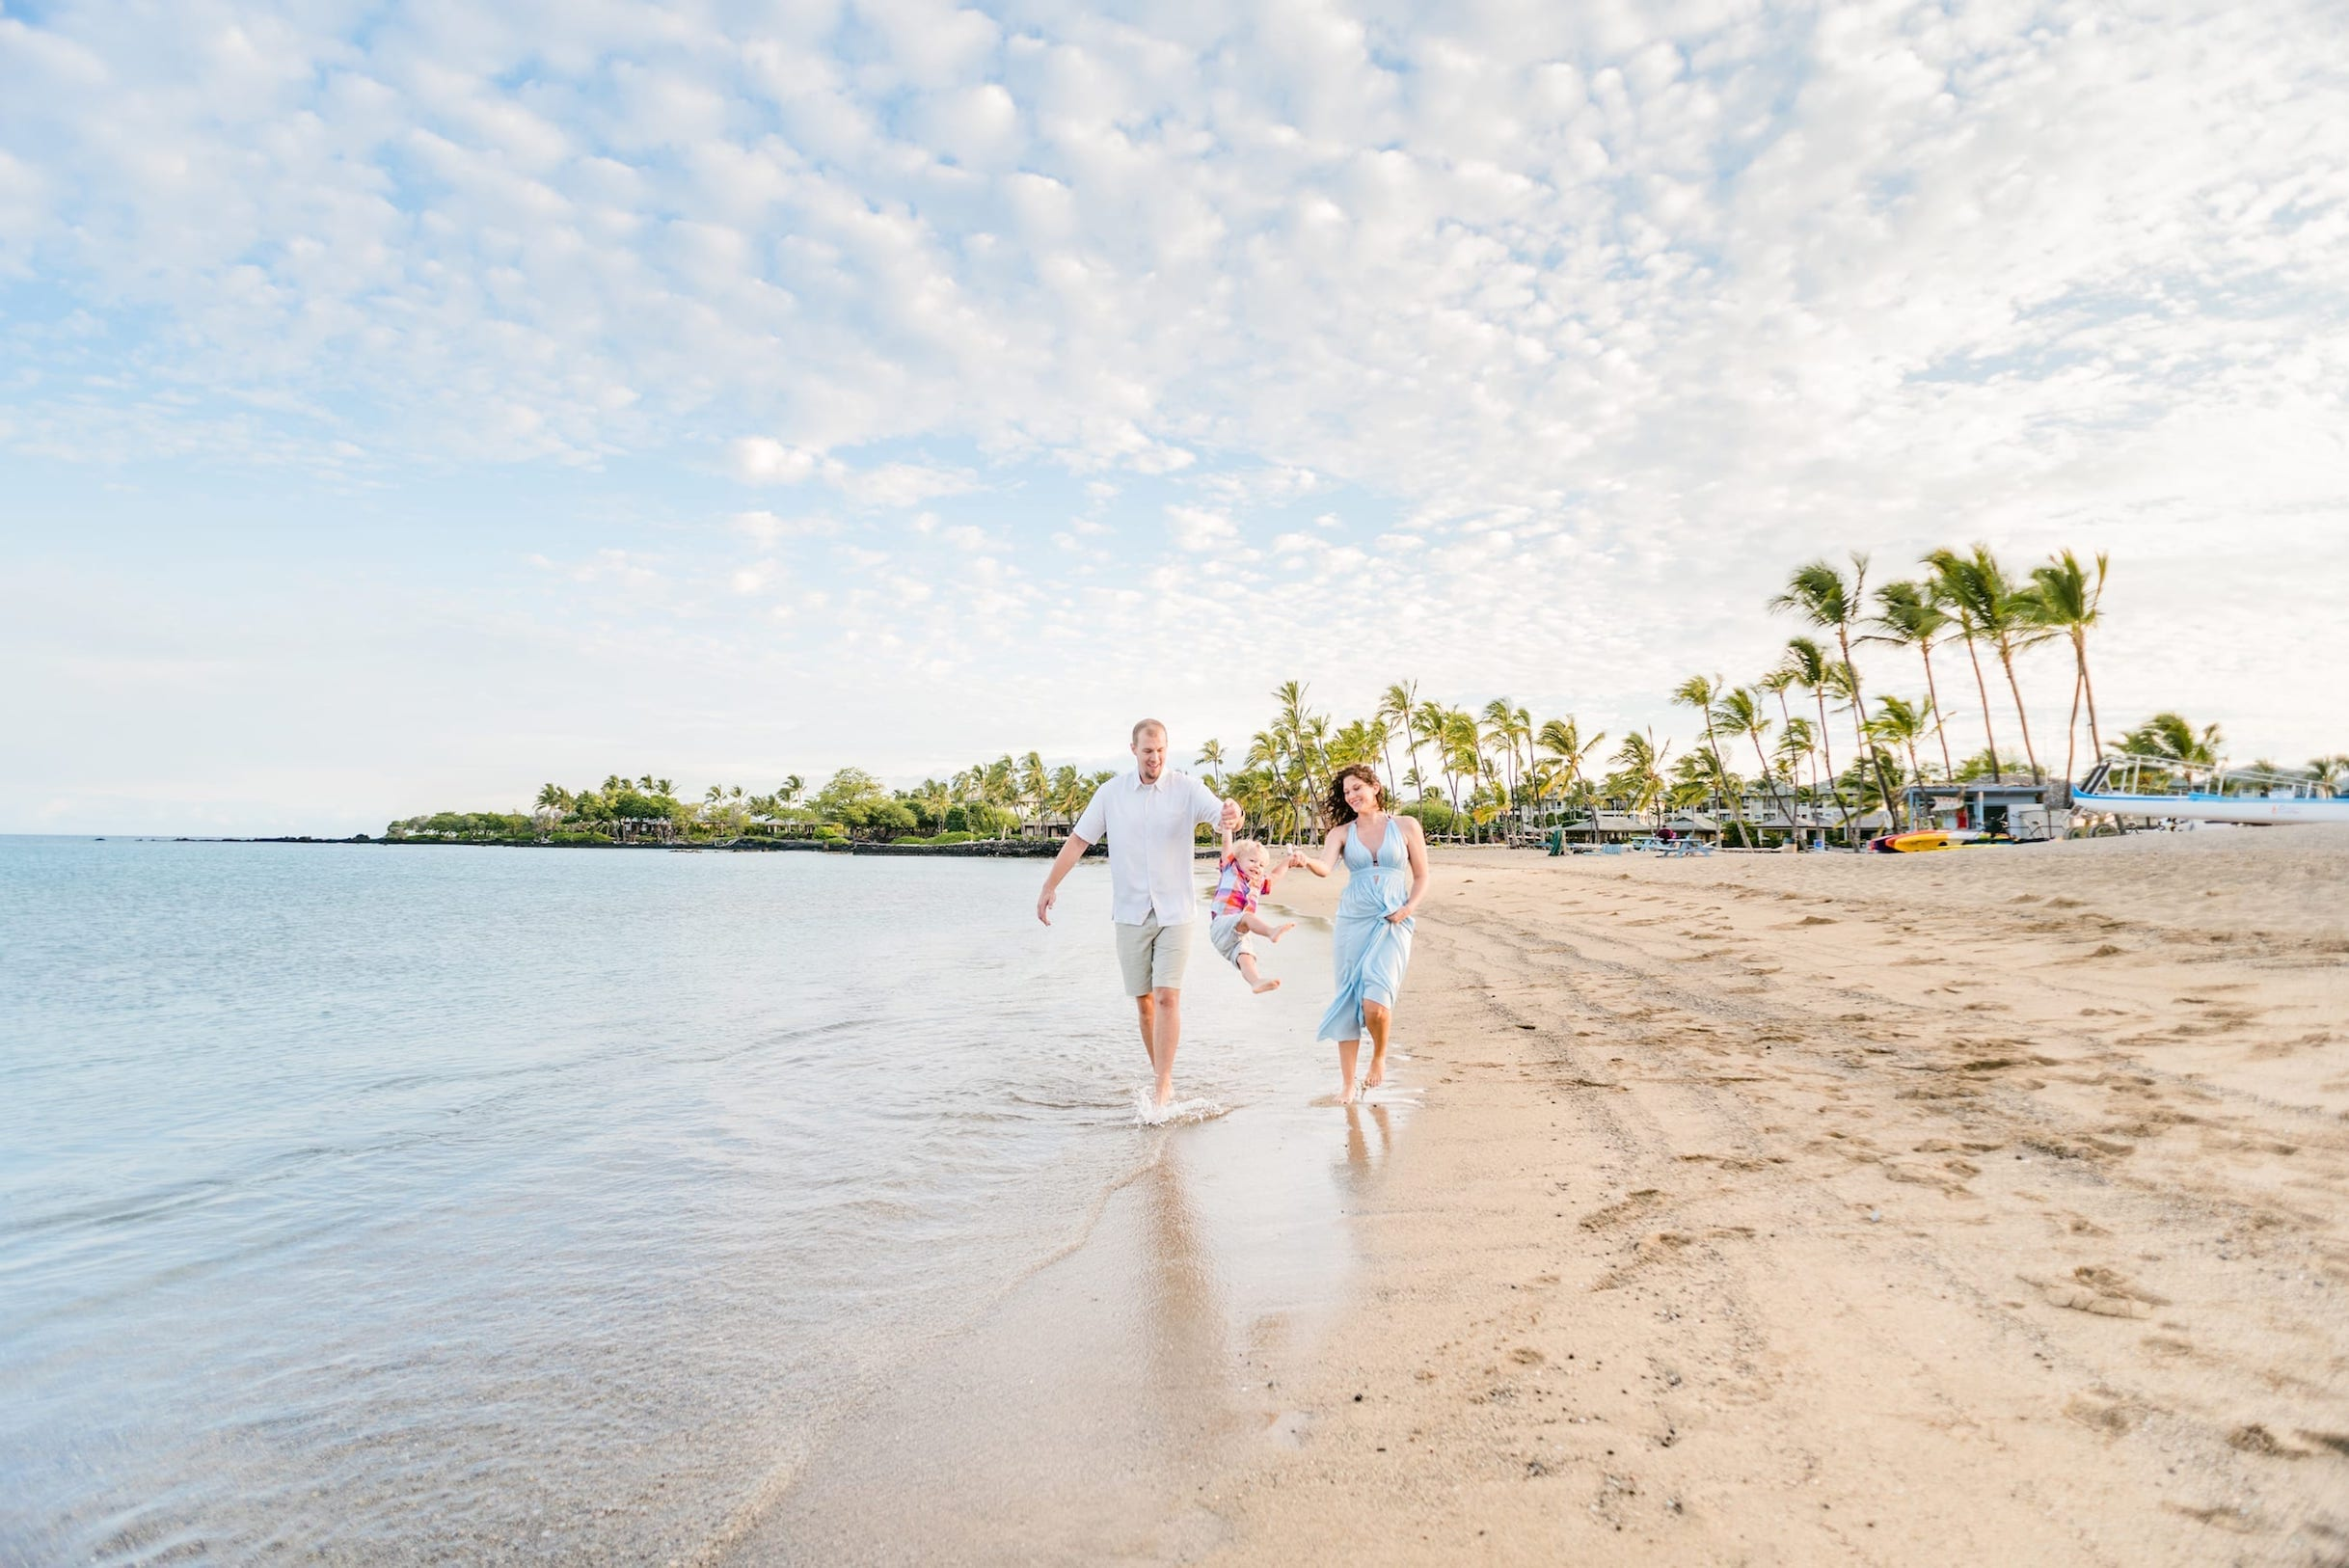 Sunrise-Hawaii-Family-Photographer-10.jpg